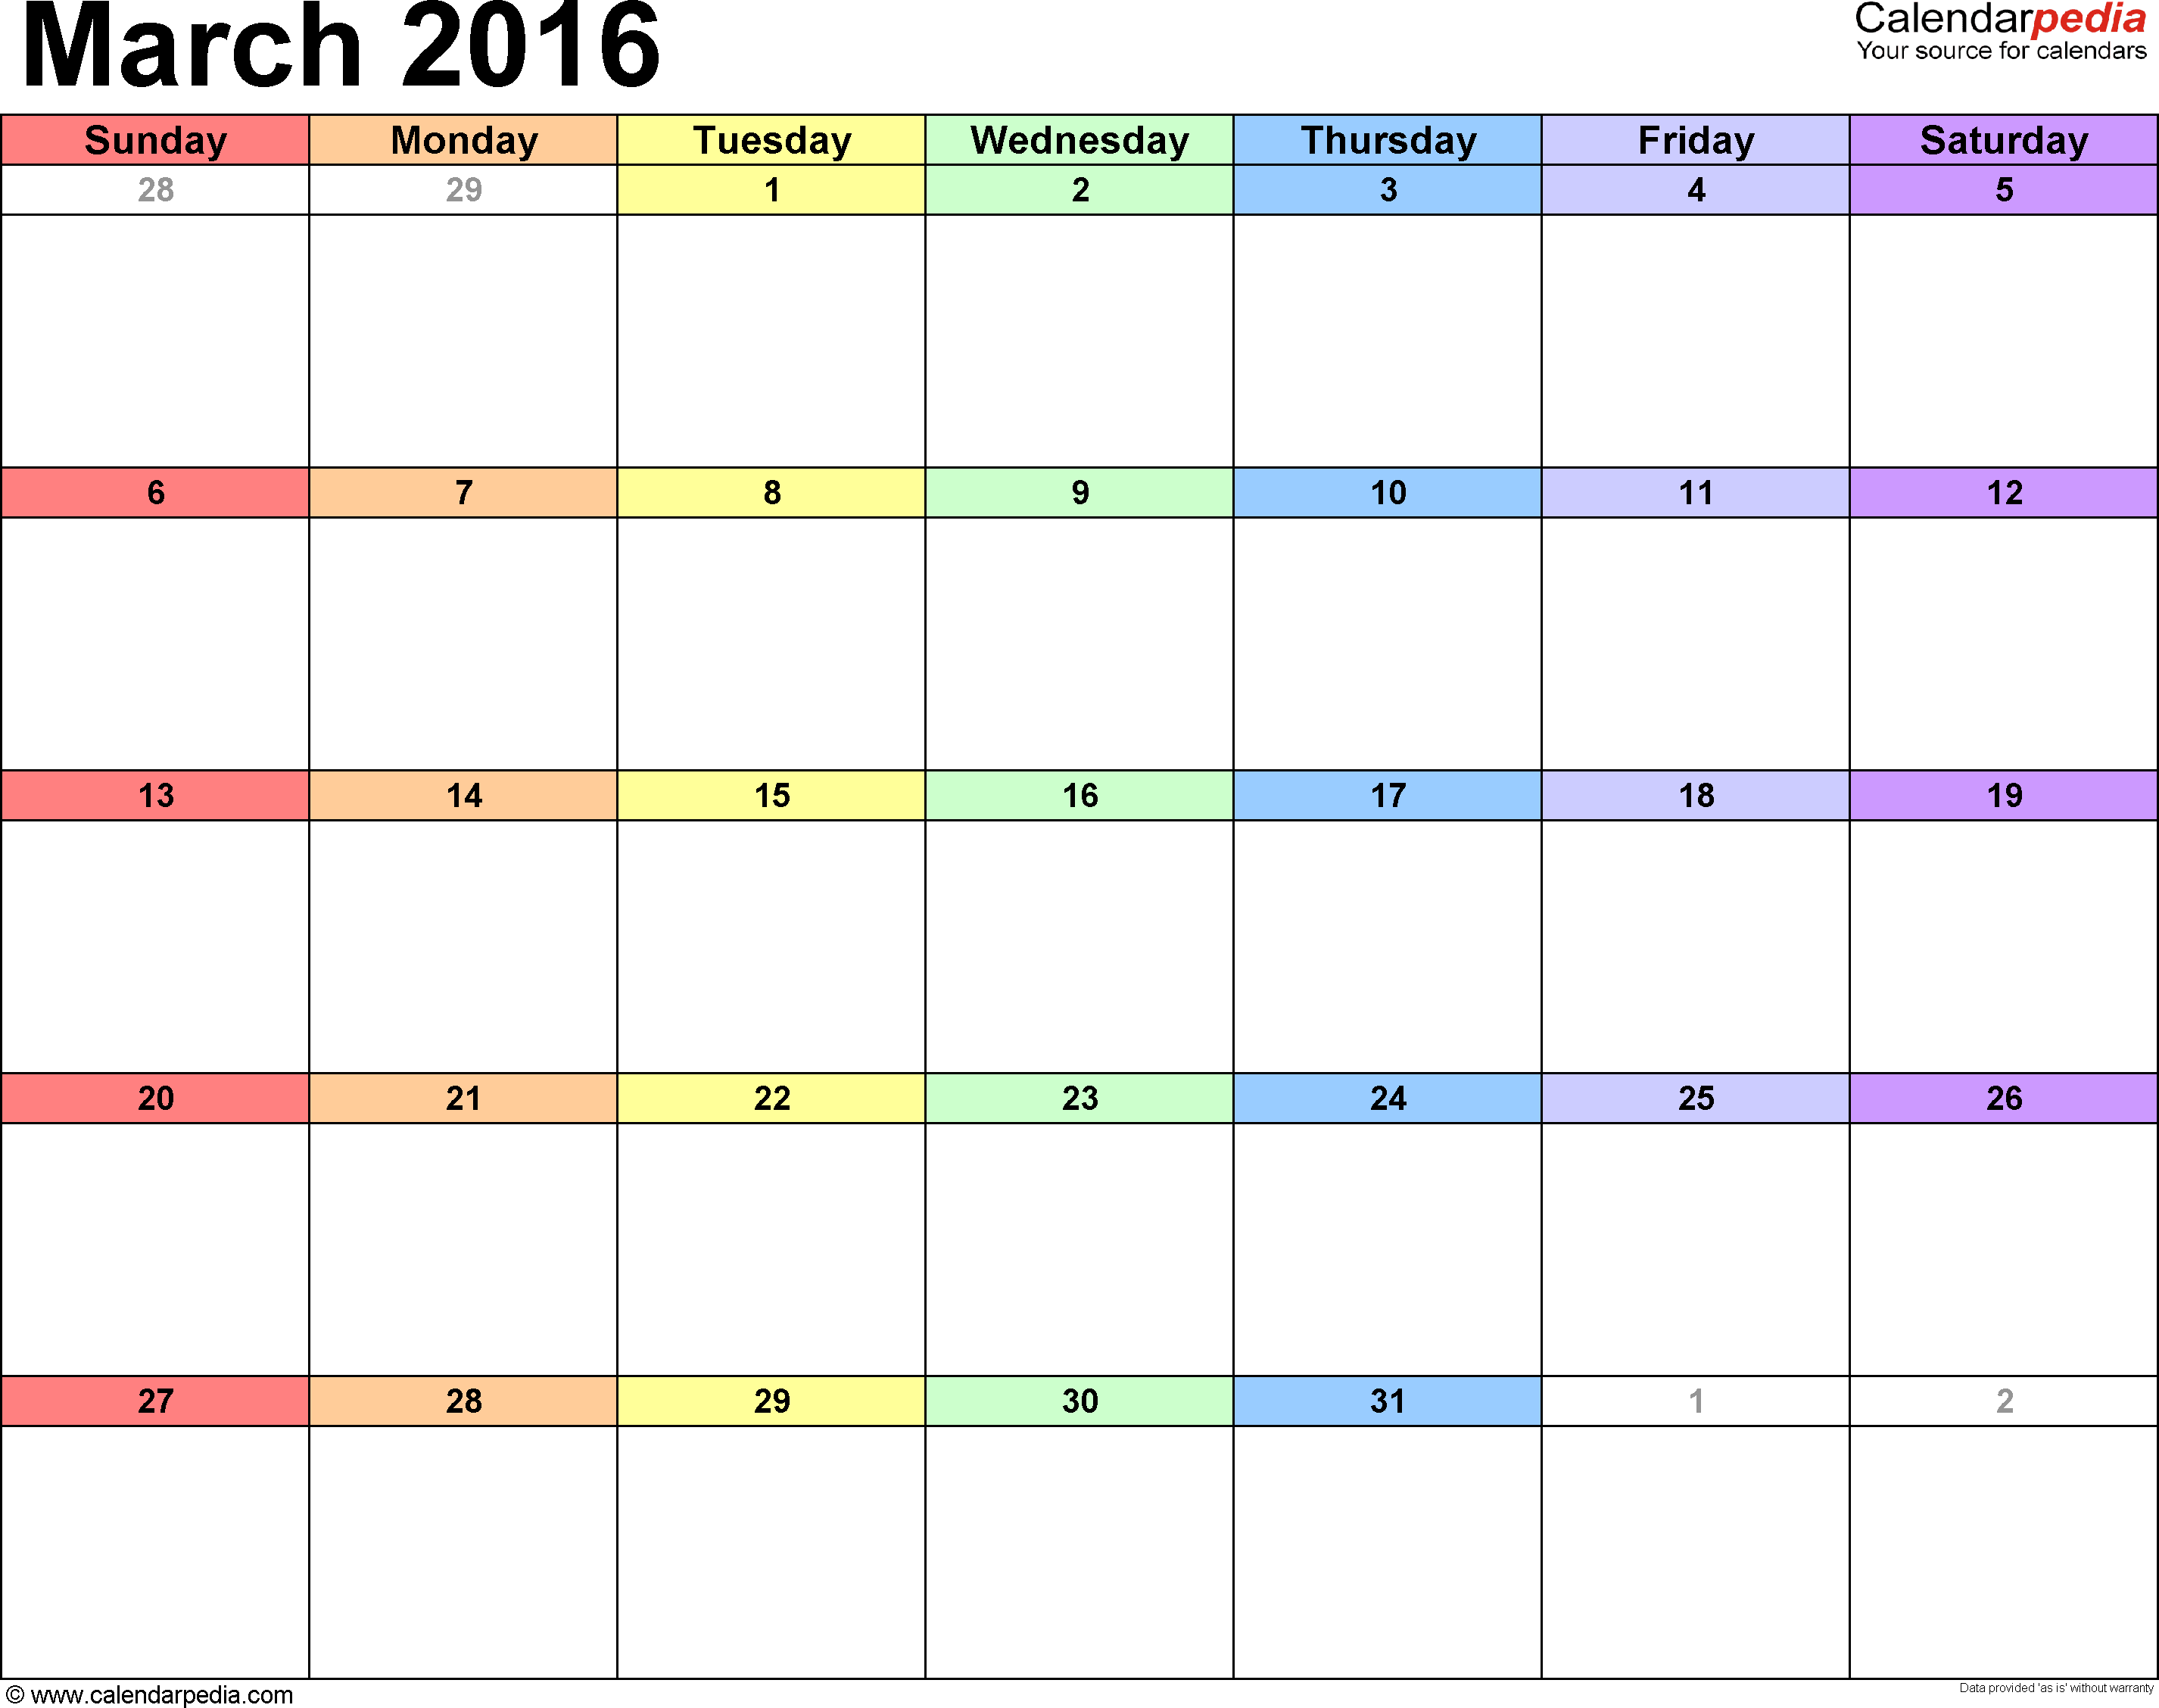 Calendar templates March 2016 in landscape format